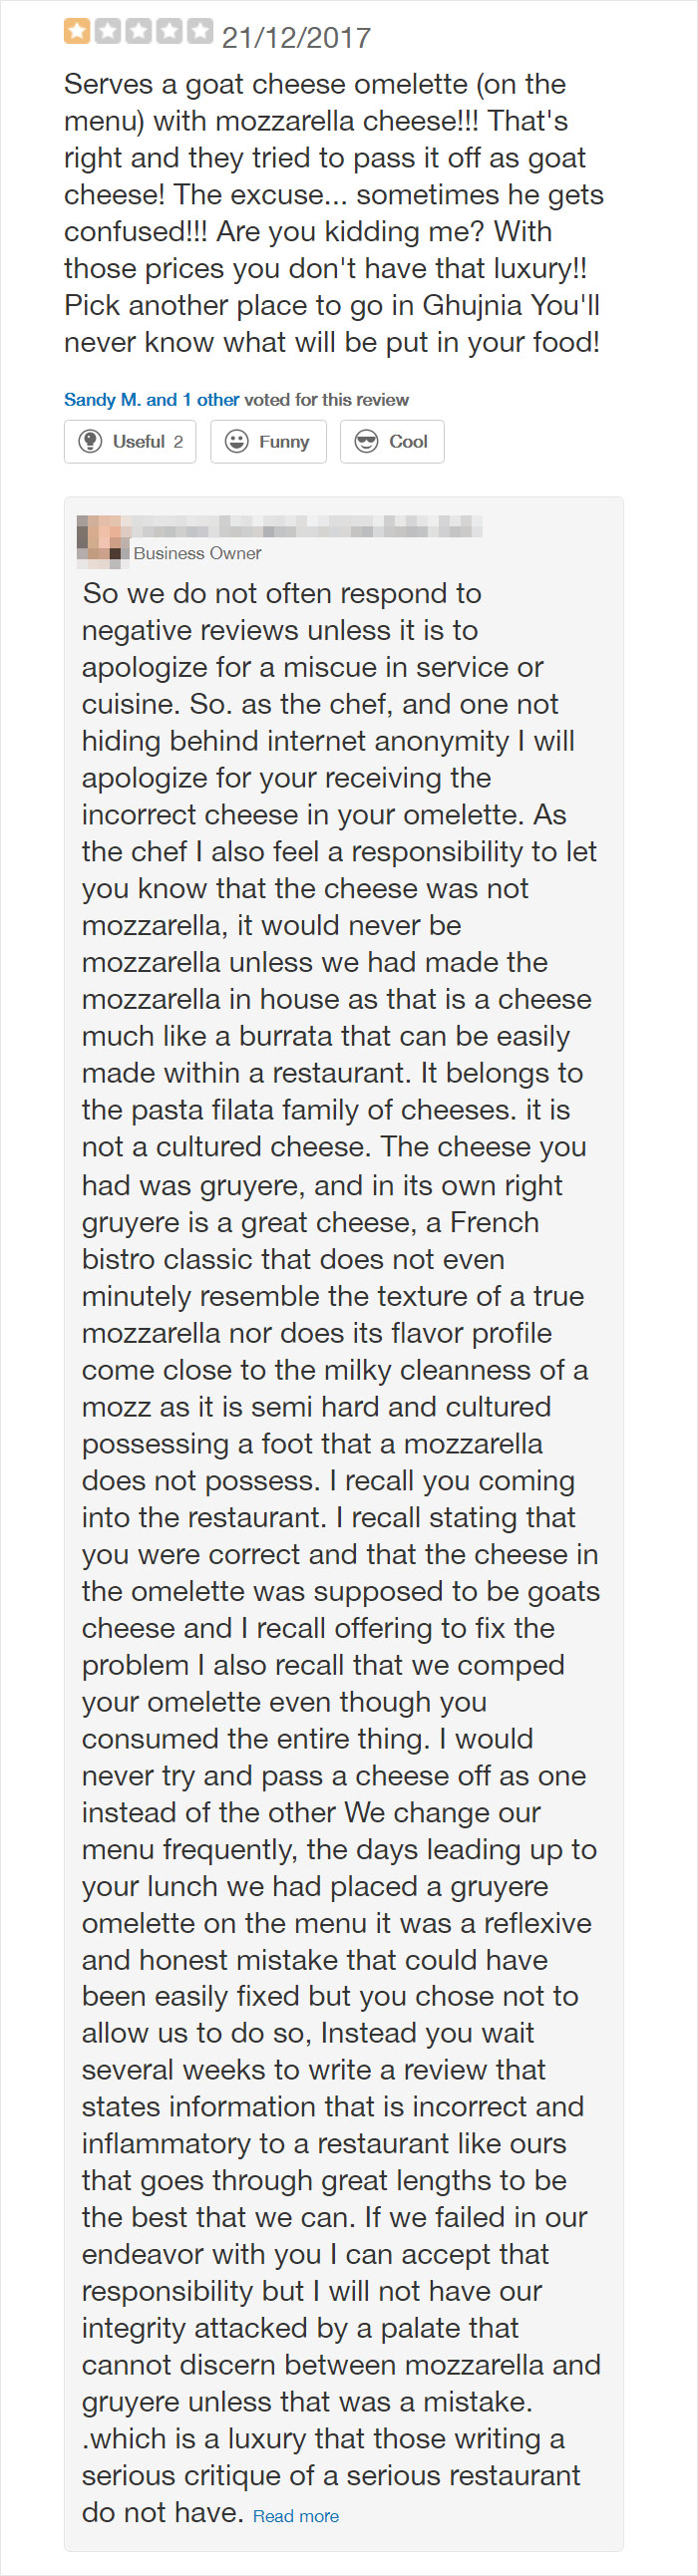 One Of My Favorite Restaurants Got A Bad Review And The Owner/Chef Called Them Out...